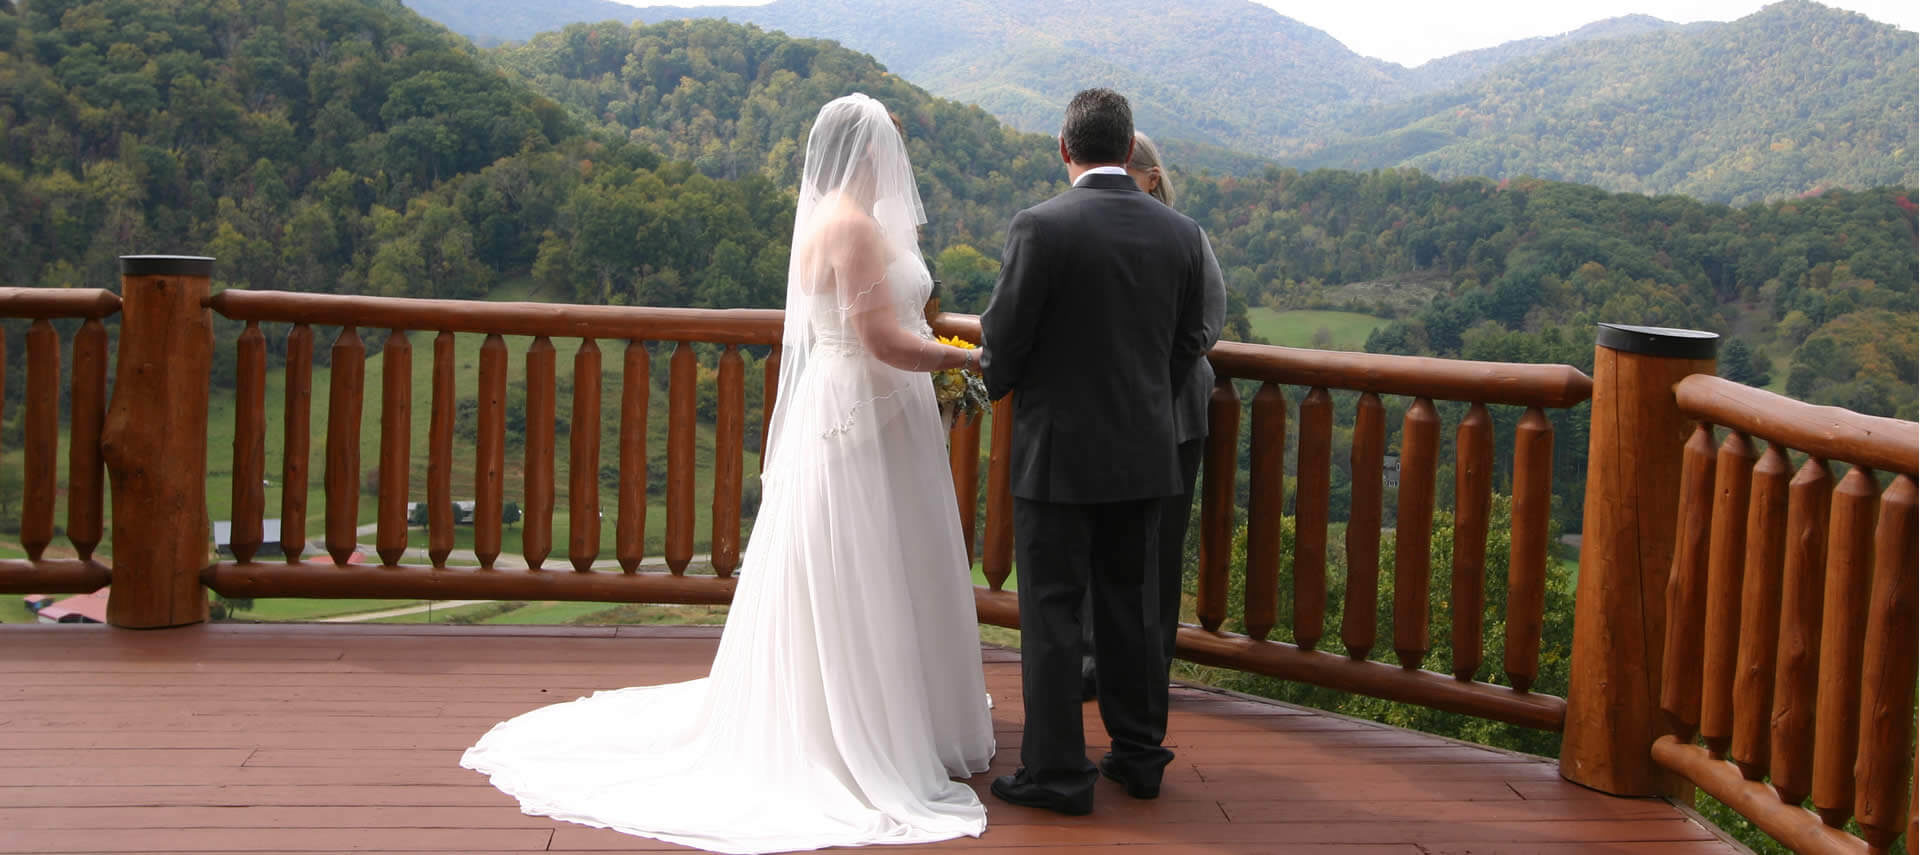 A bride in a white gown and grrom in a black tuxedo say their vows on a deck overlooking wooded hills.